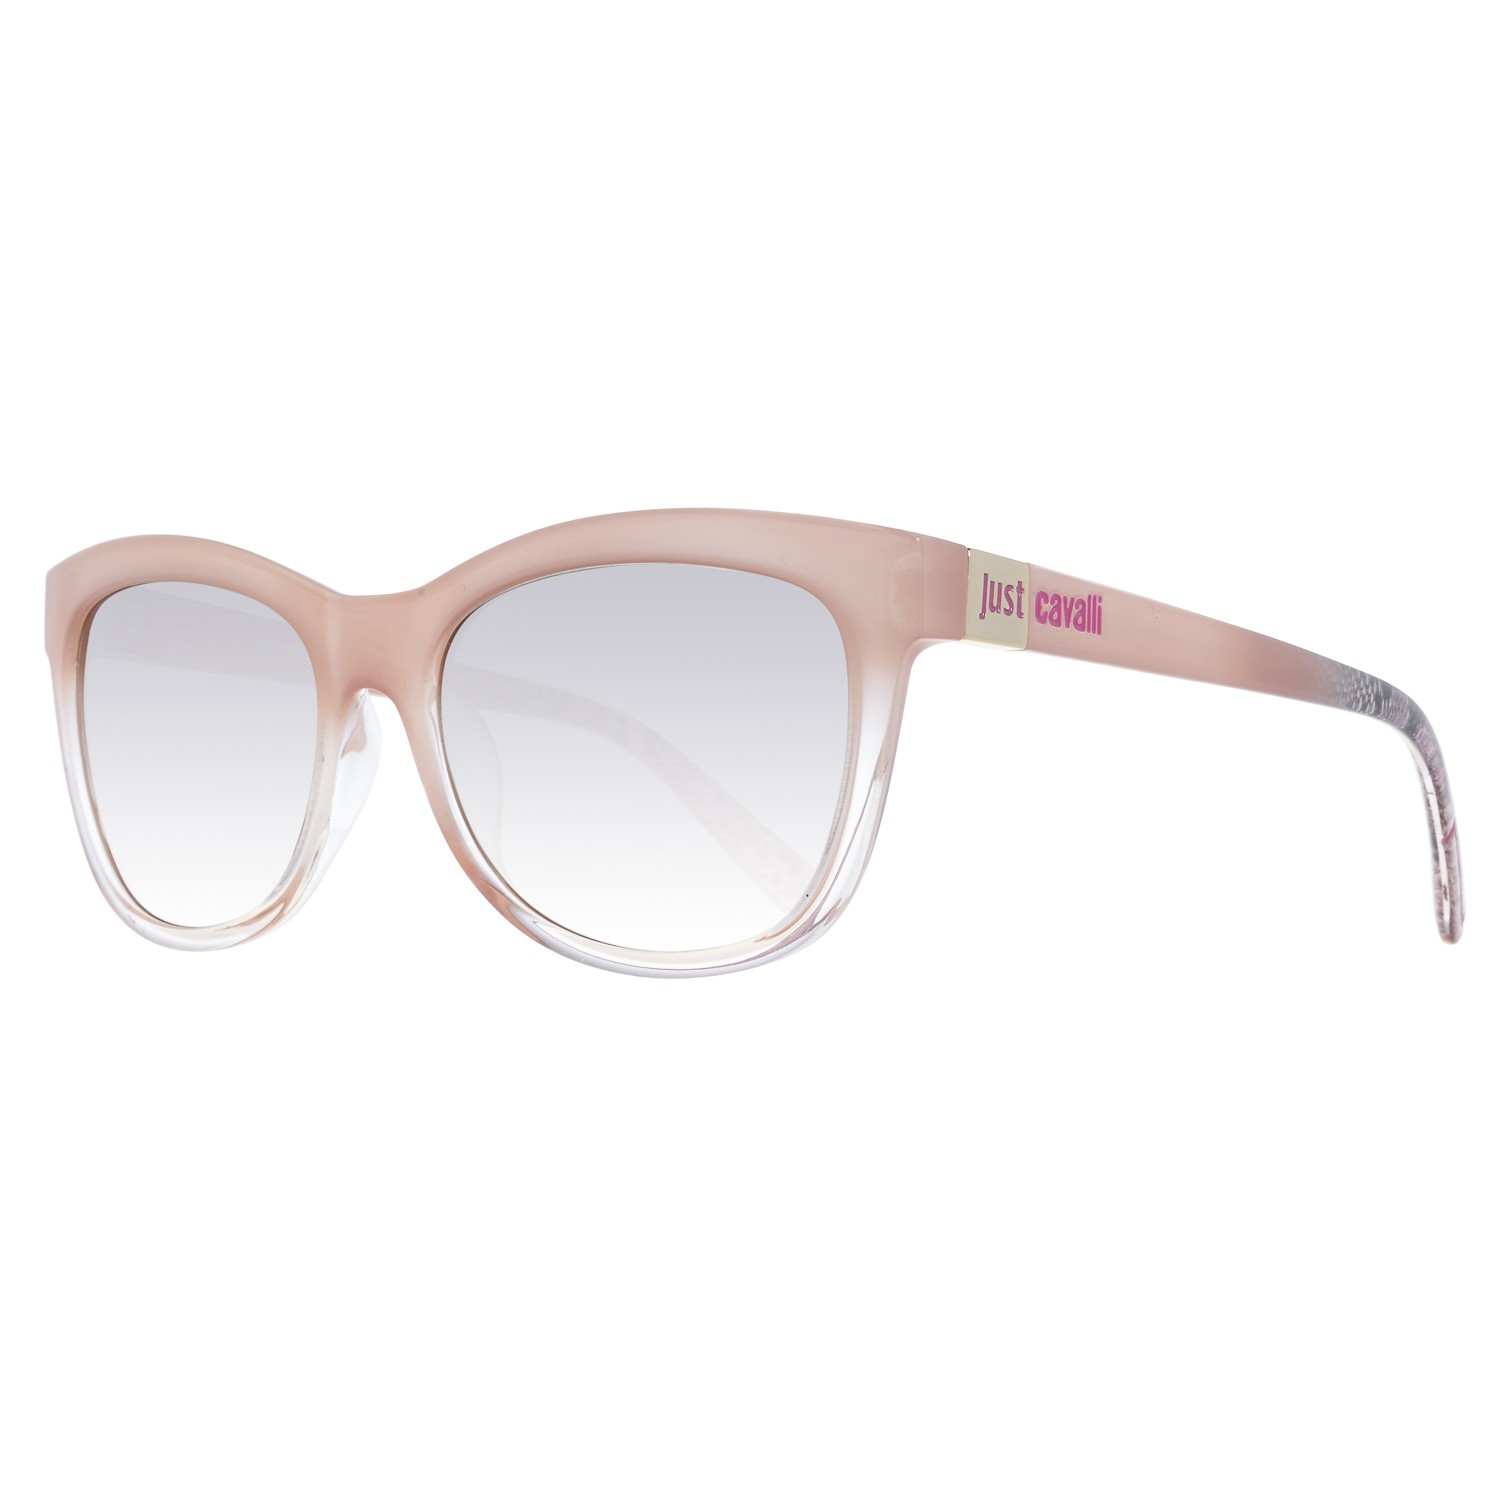 Just Cavalli Eyewear Sonnenbrille Damen sancH8n